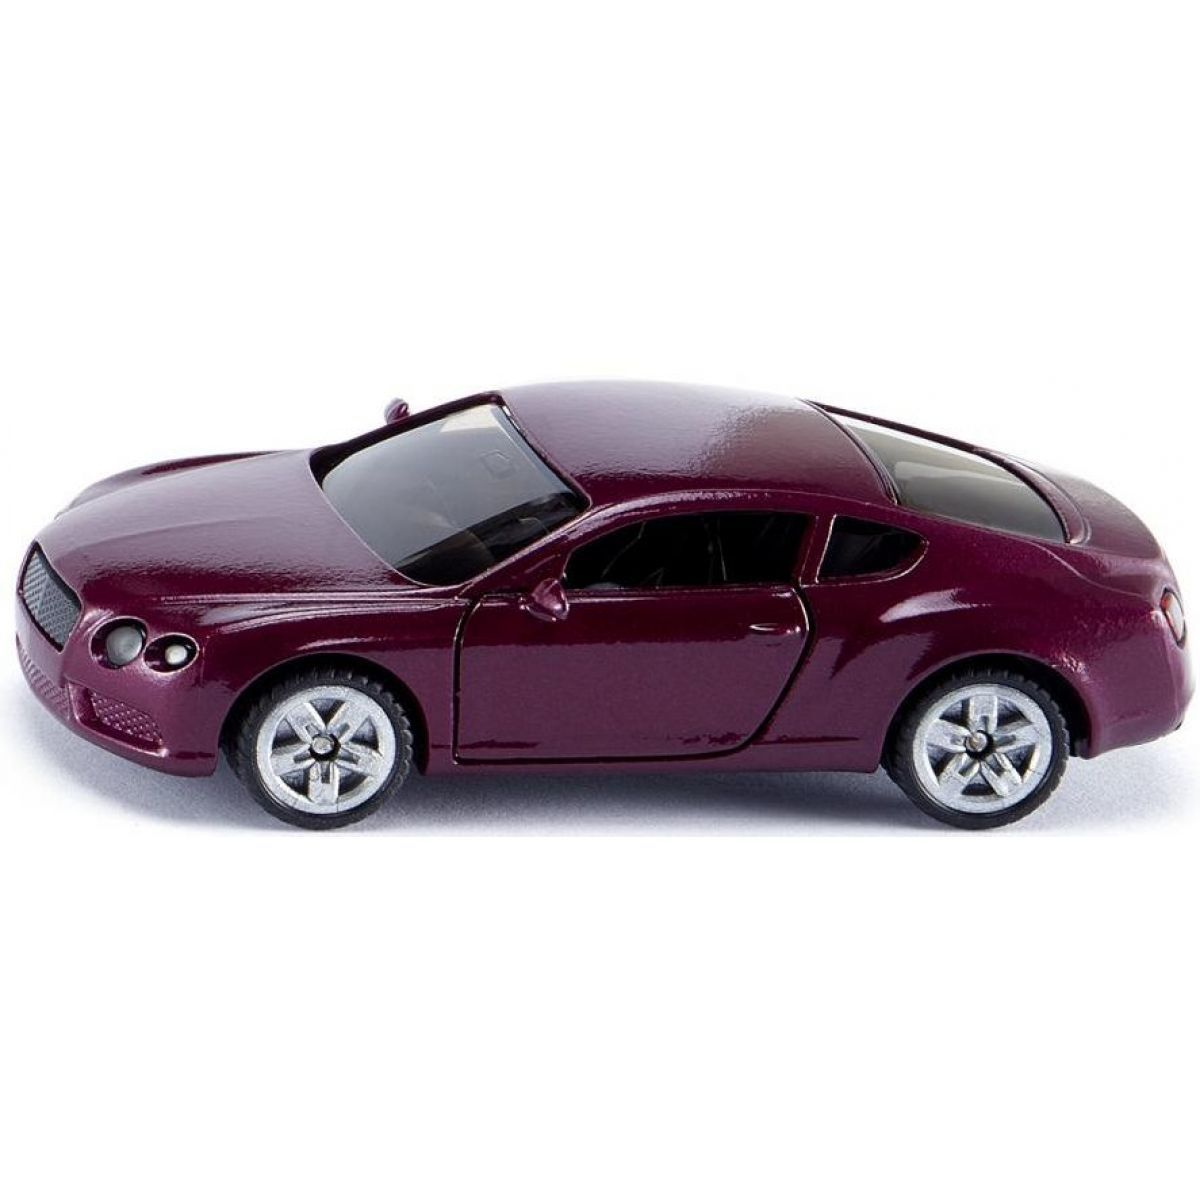 Siku Blister Bentley Continental GT V8 S